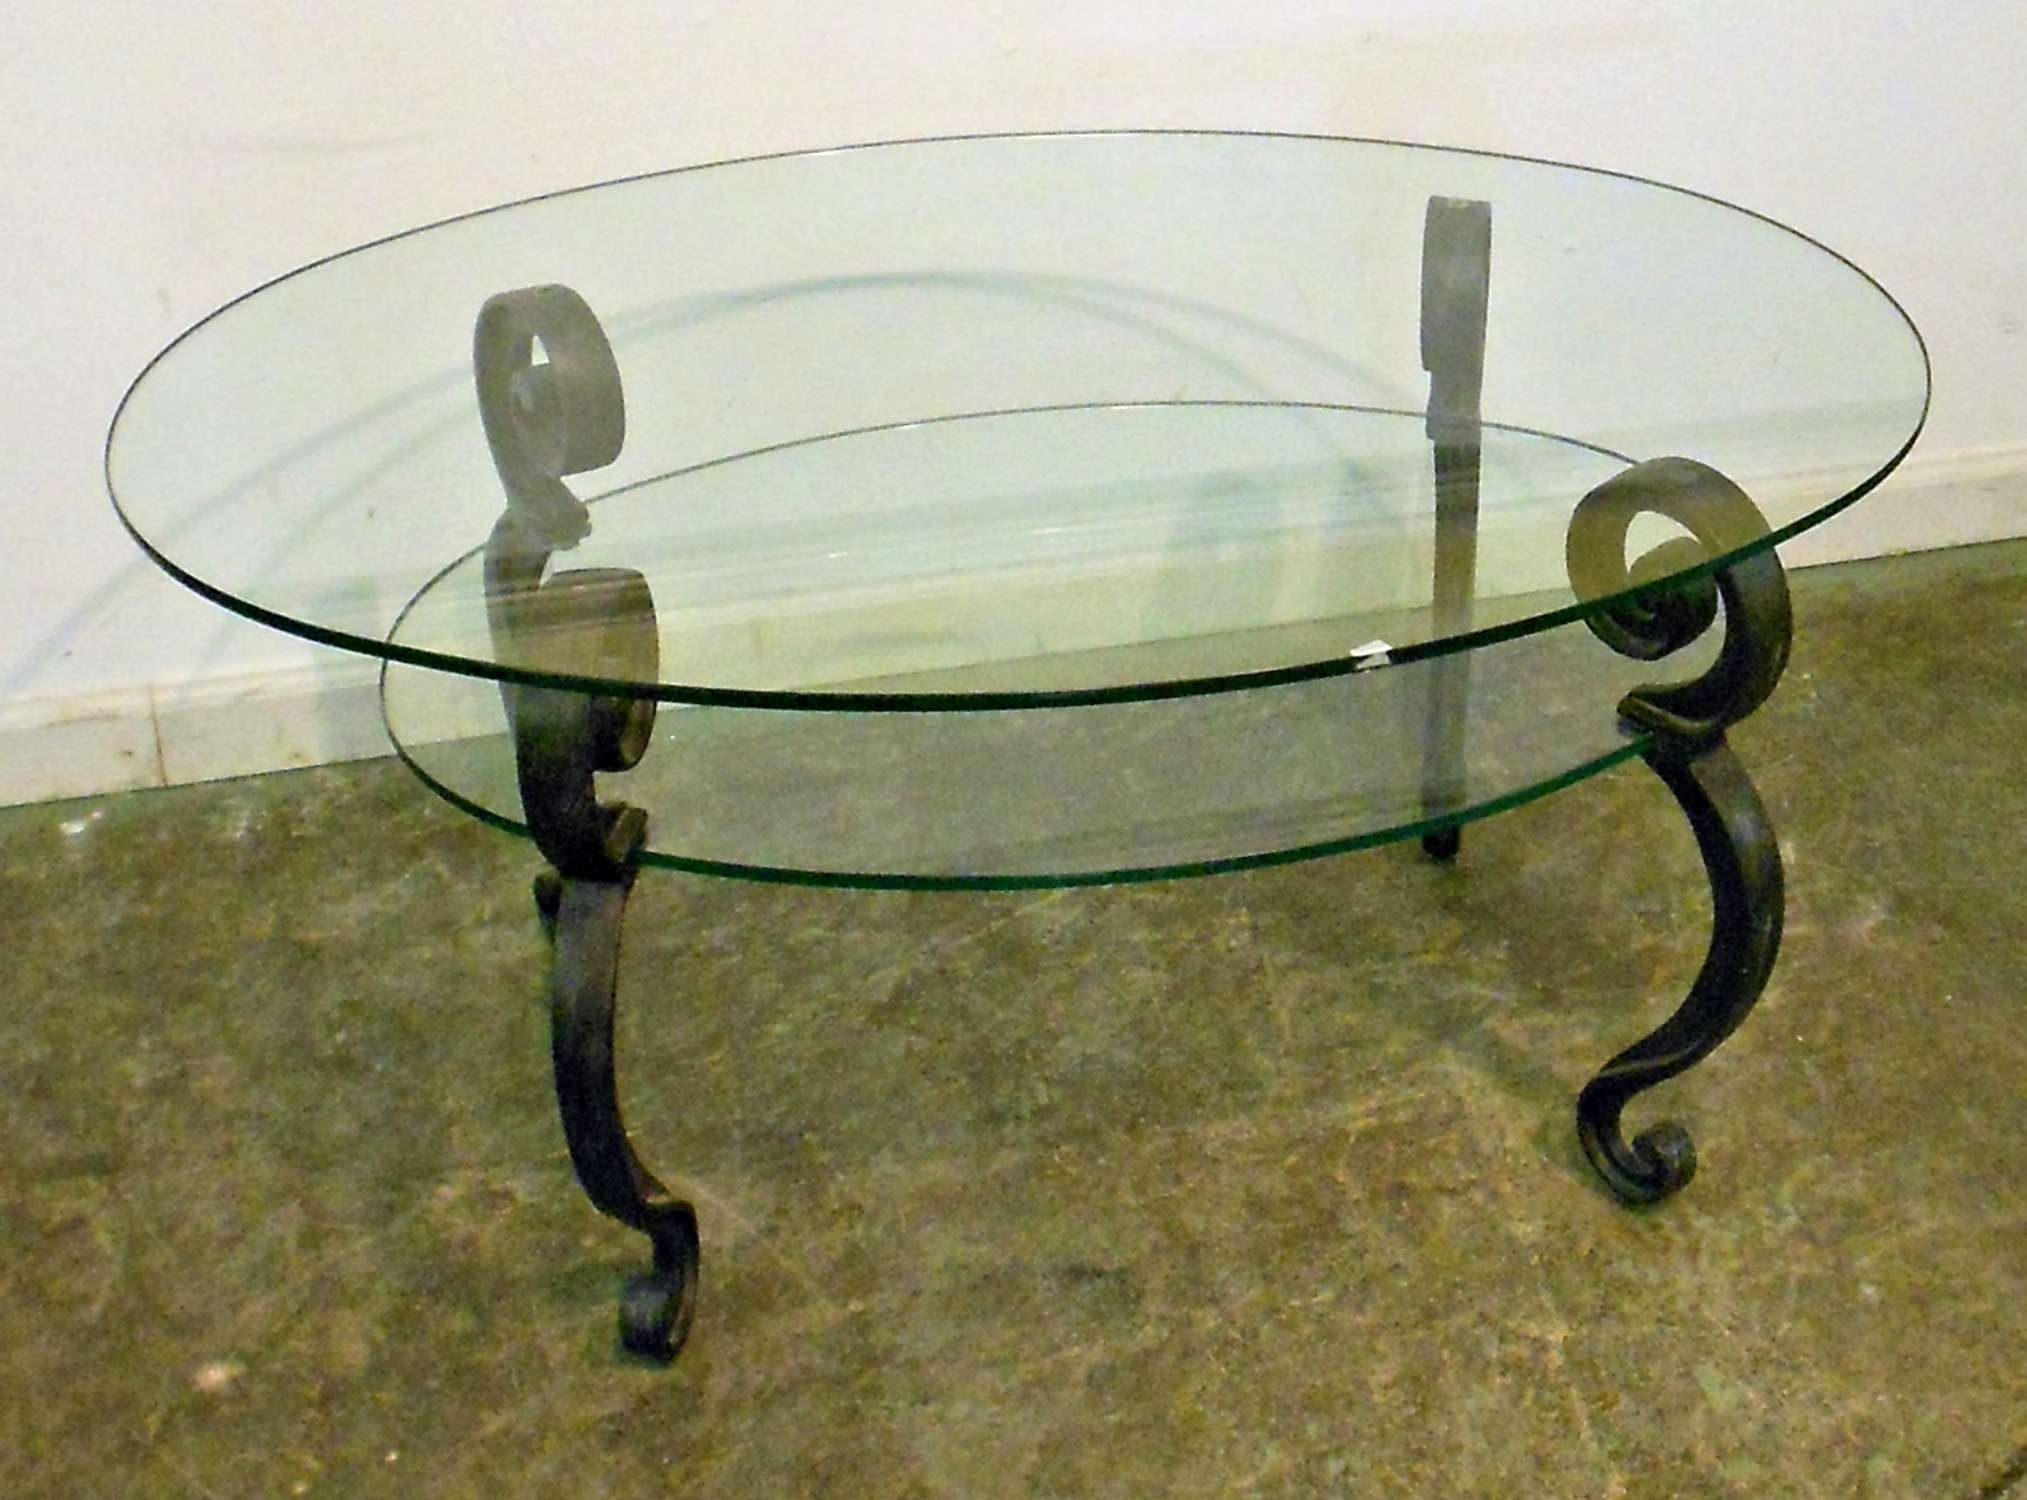 Vintage Glass Top Coffee Table With Black Metal Legs And Shelves Within Recent Glass And Black Metal Coffee Table (Gallery 8 of 20)